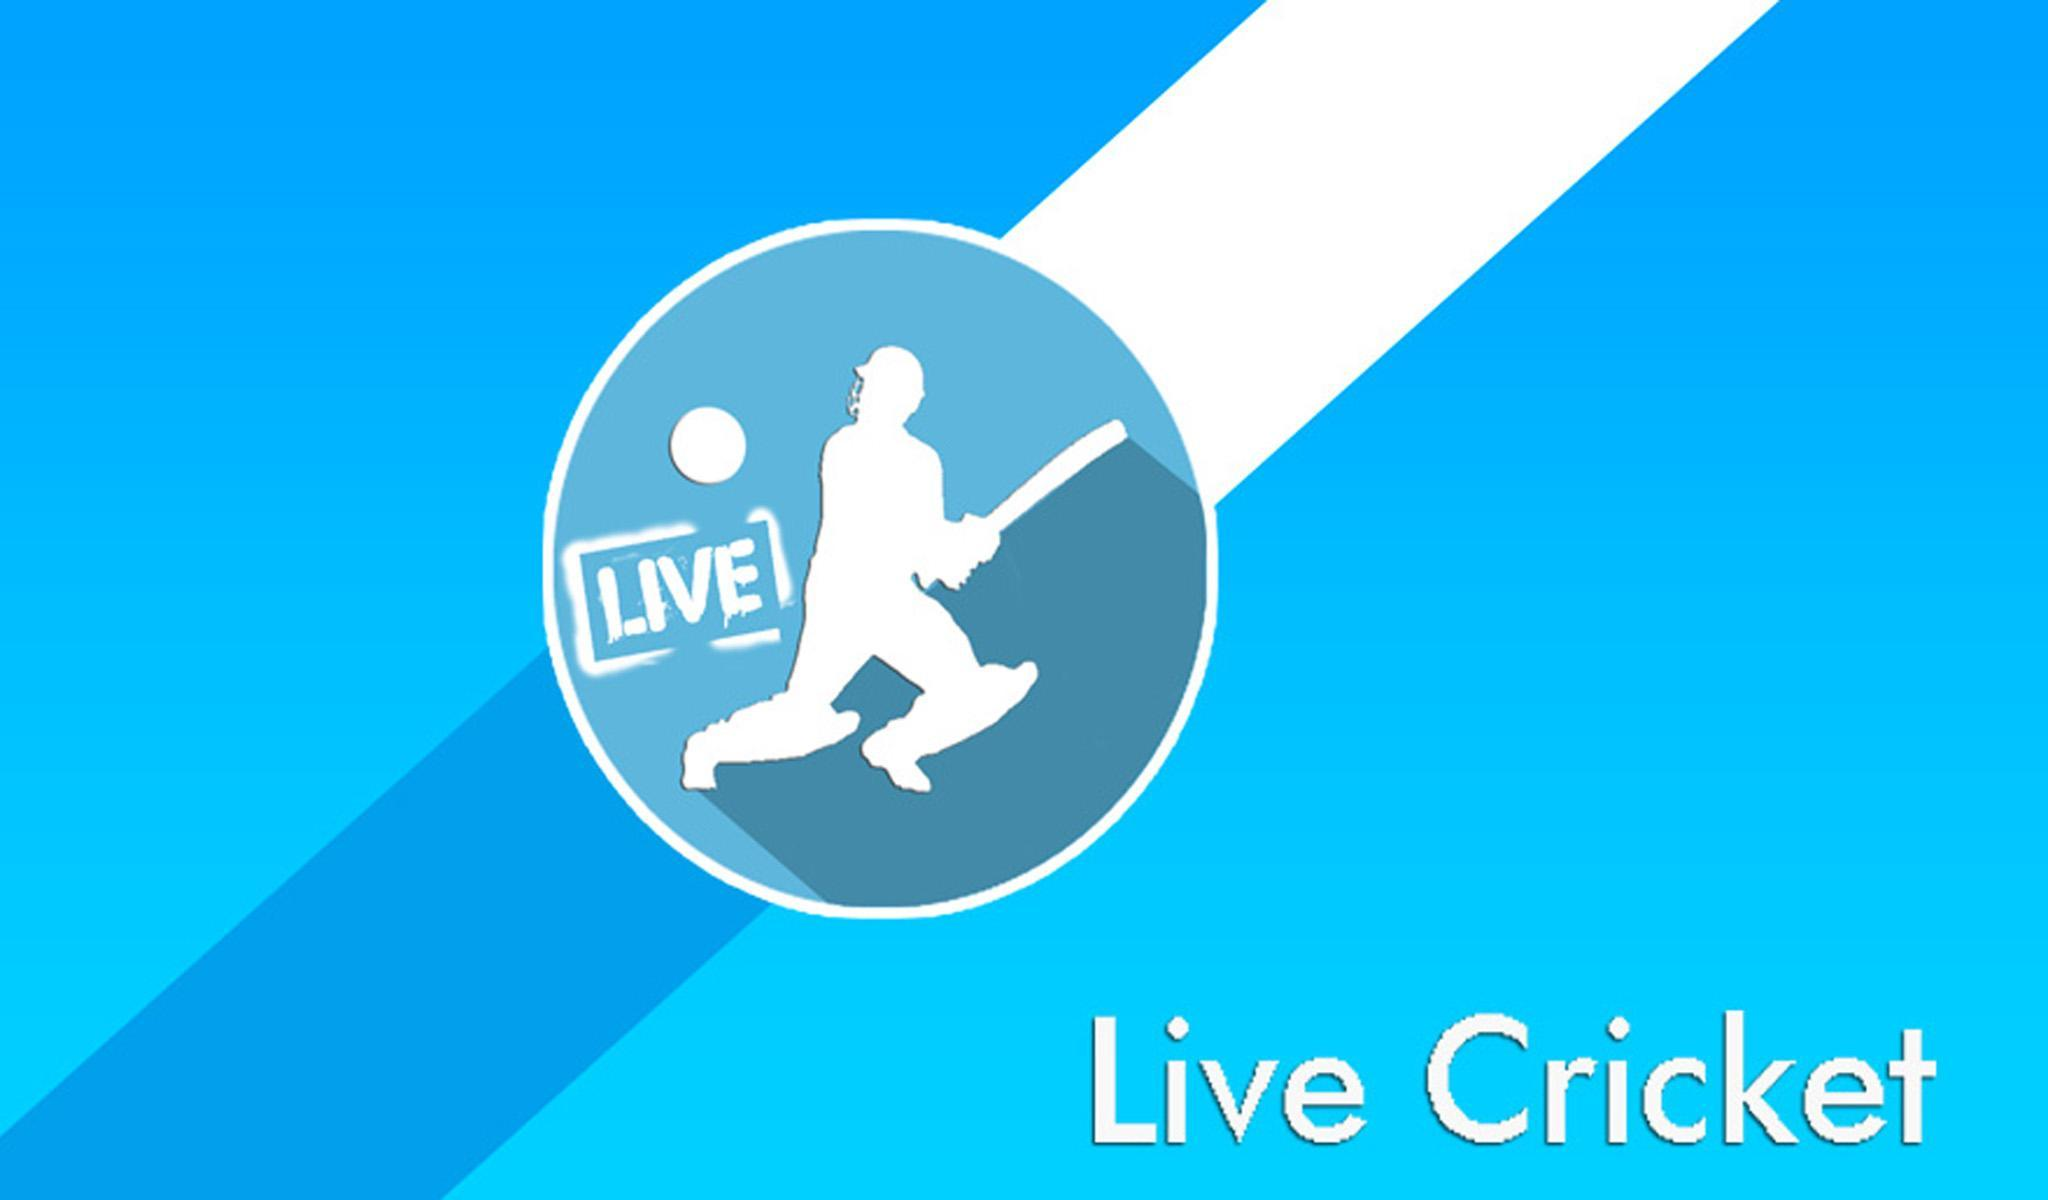 Live Cricket for Android - APK Download